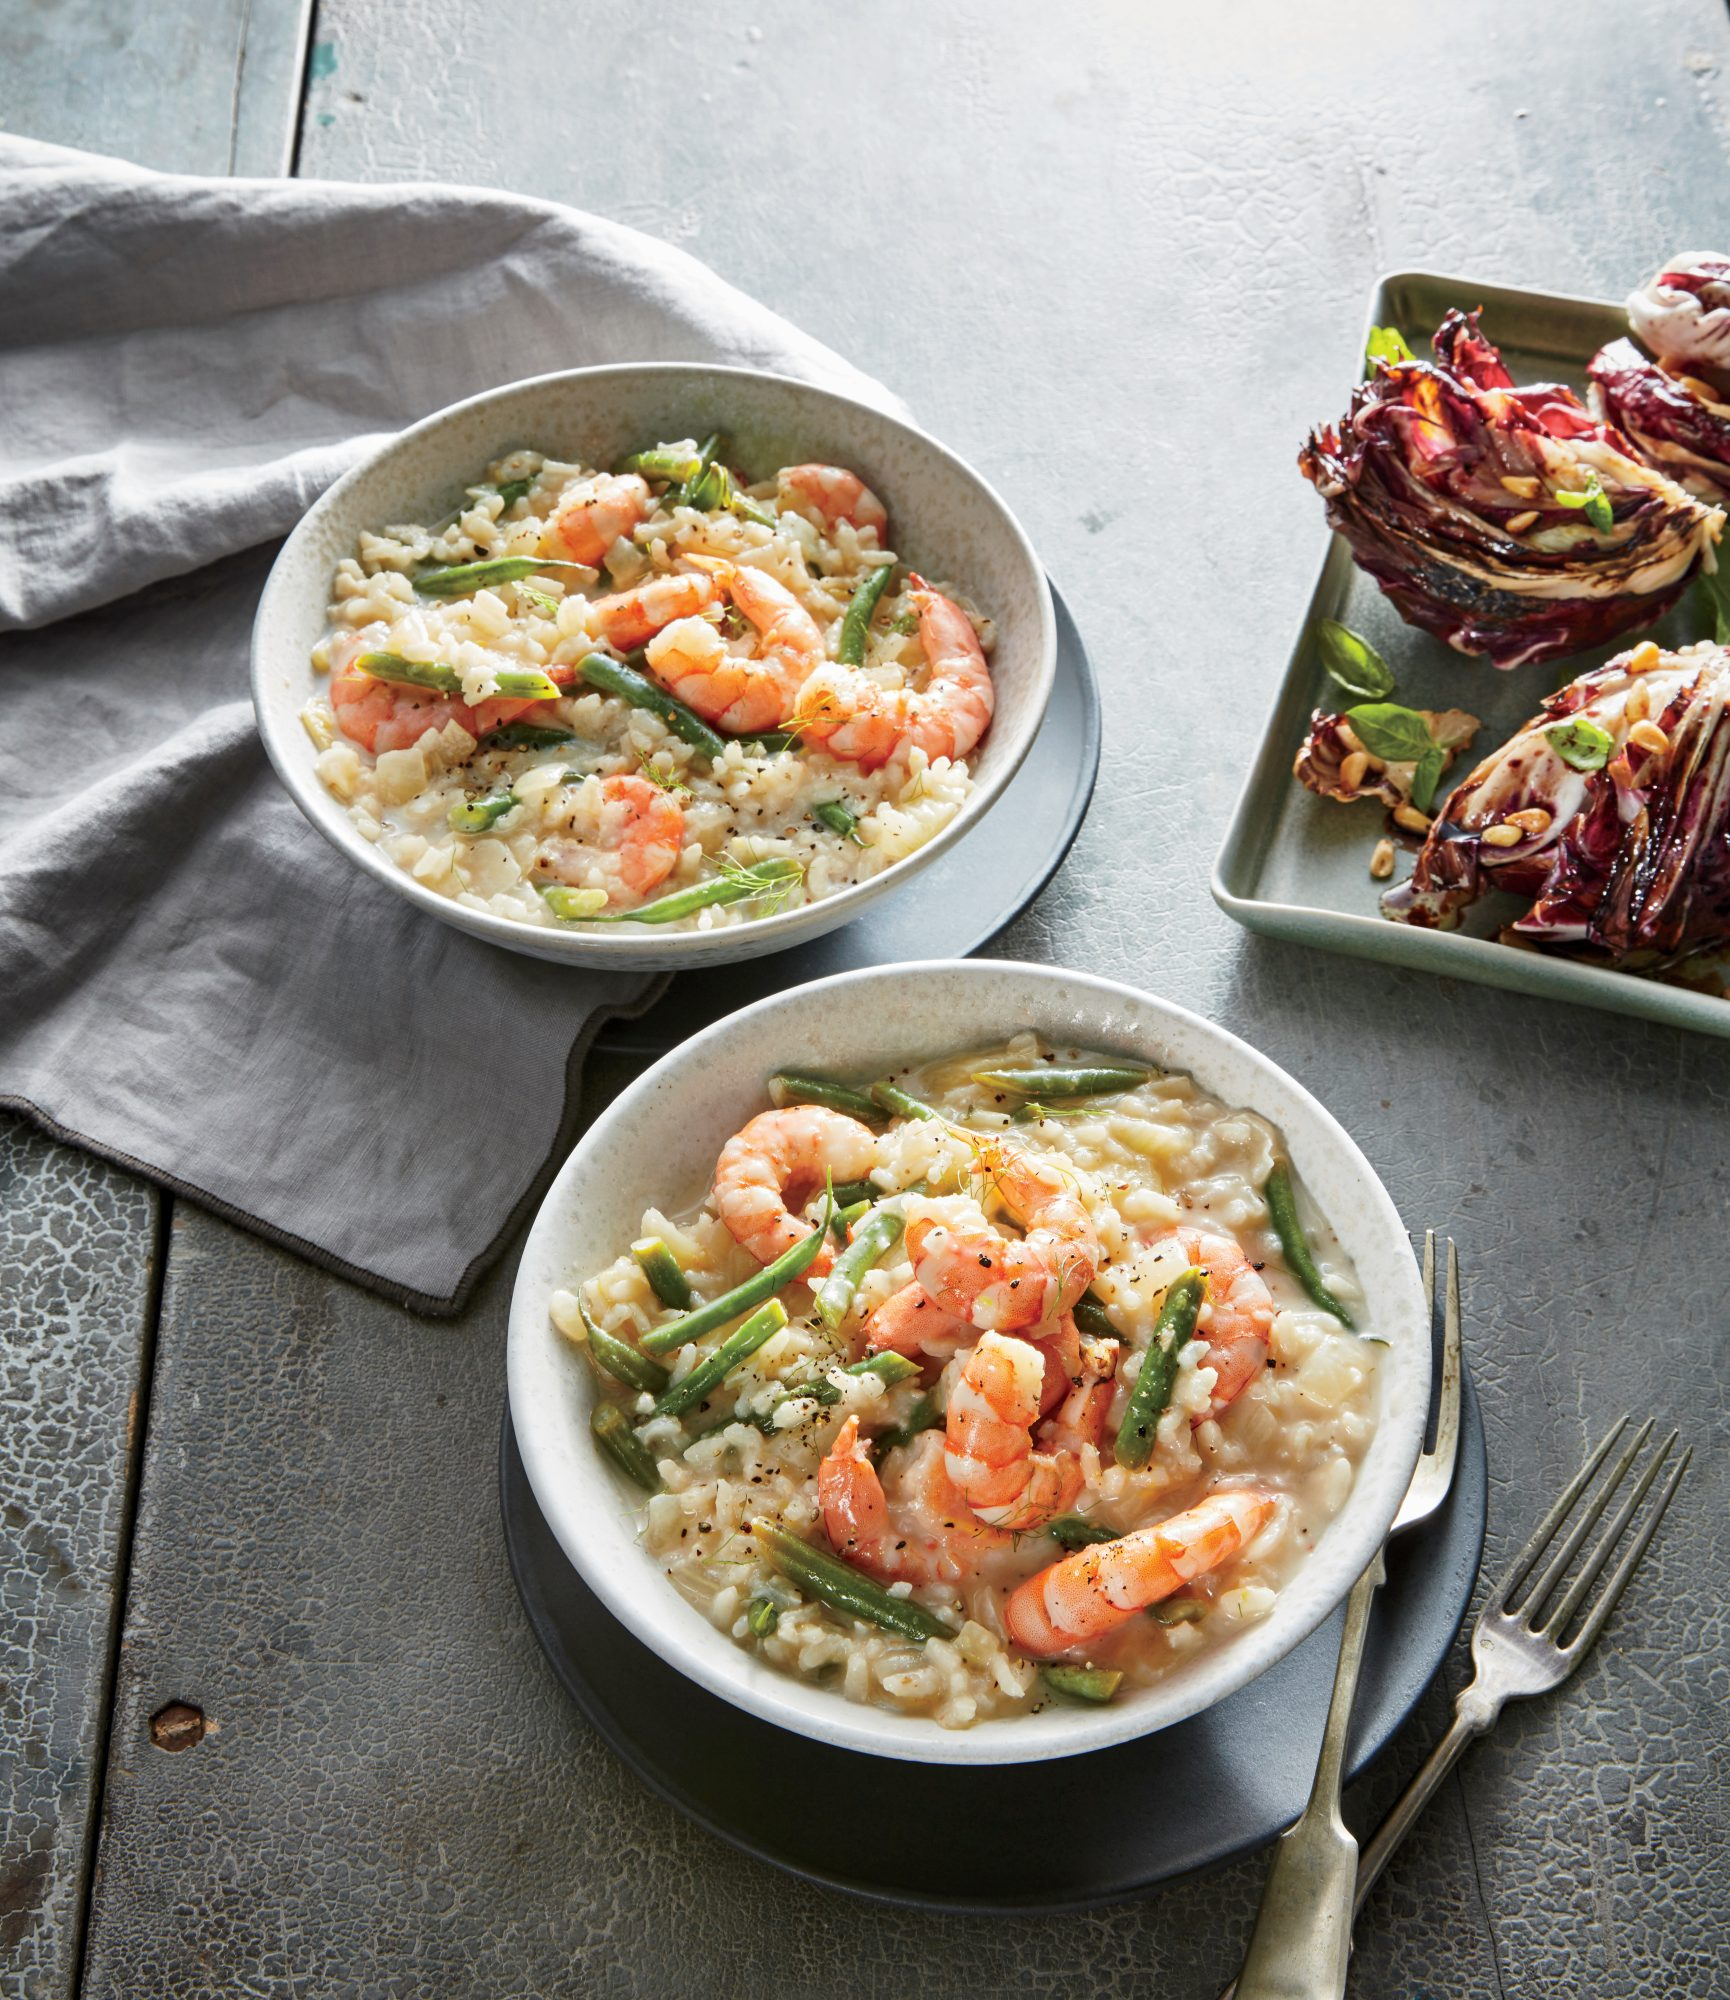 Lemon-Herb Risotto with Shrimp and Haricot Verts